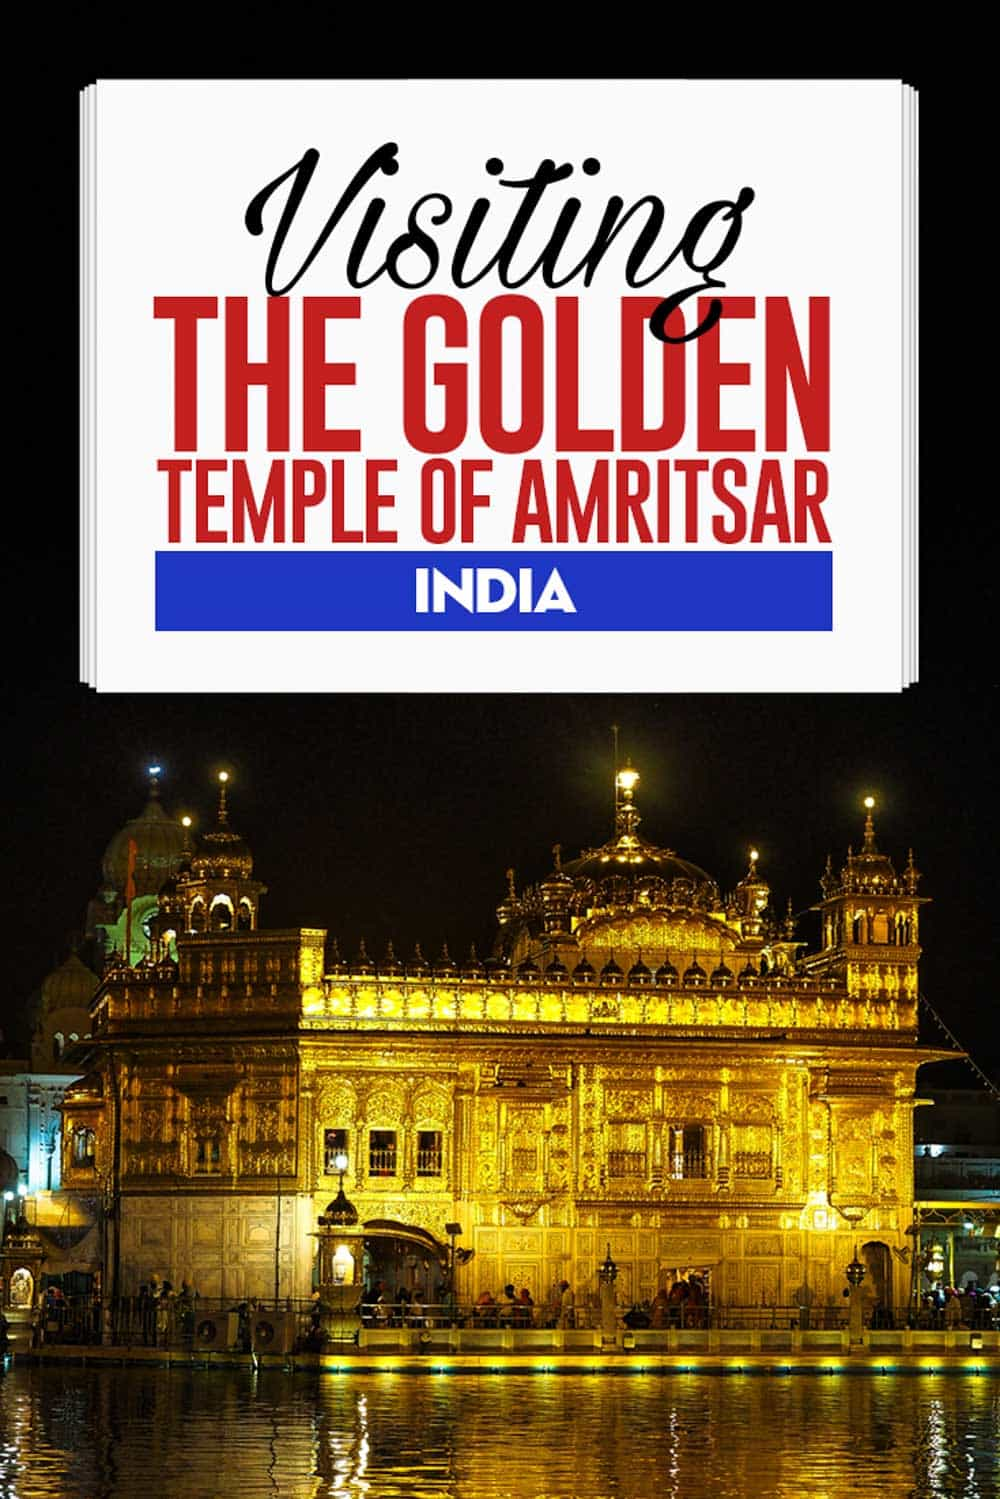 Travel guide to the Golden temple travels Amritsar in India Punjab